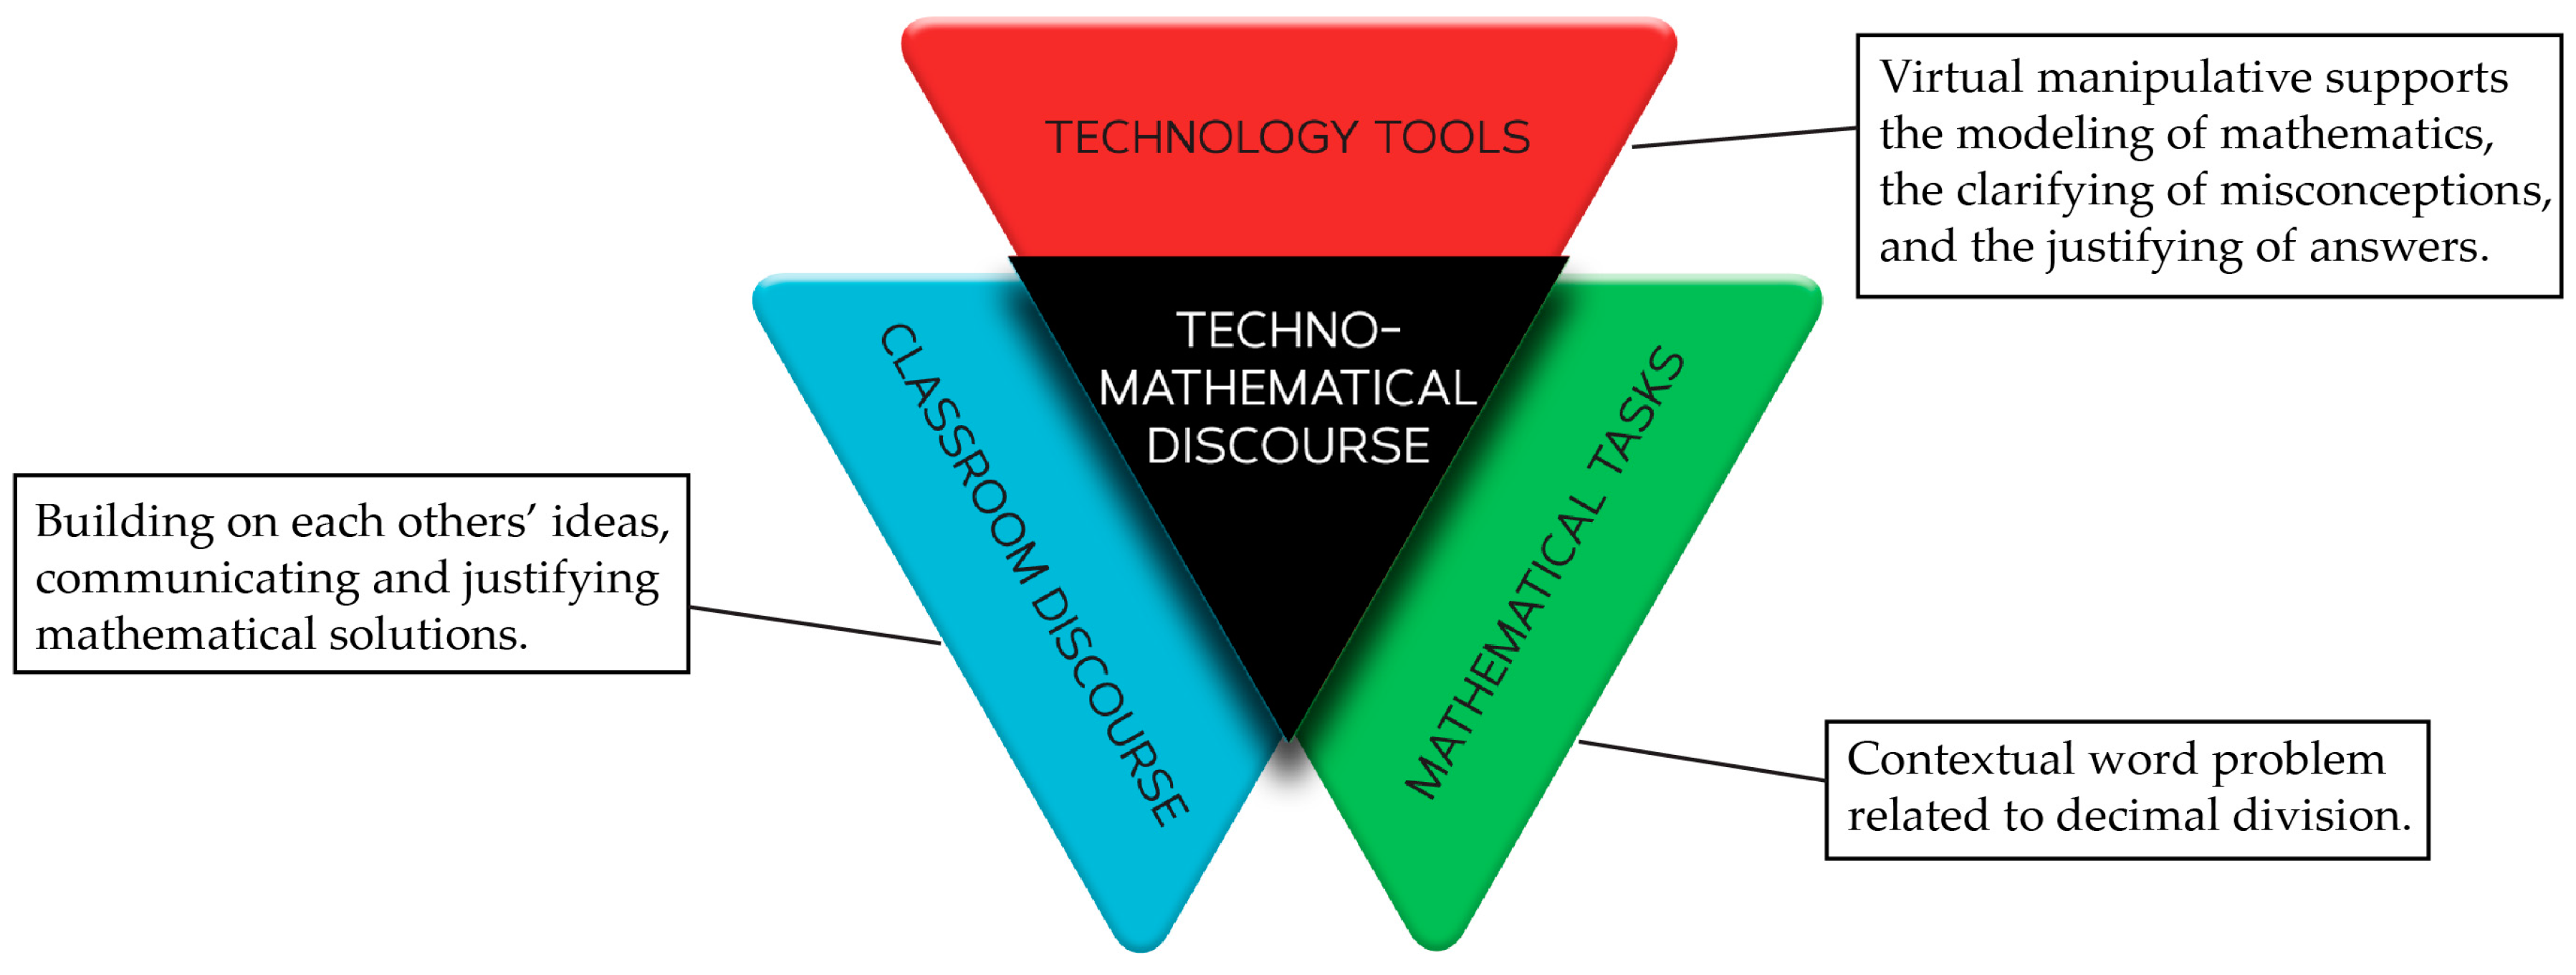 Education sciences free full text techno mathematical education 07 00040 g007 sciox Images